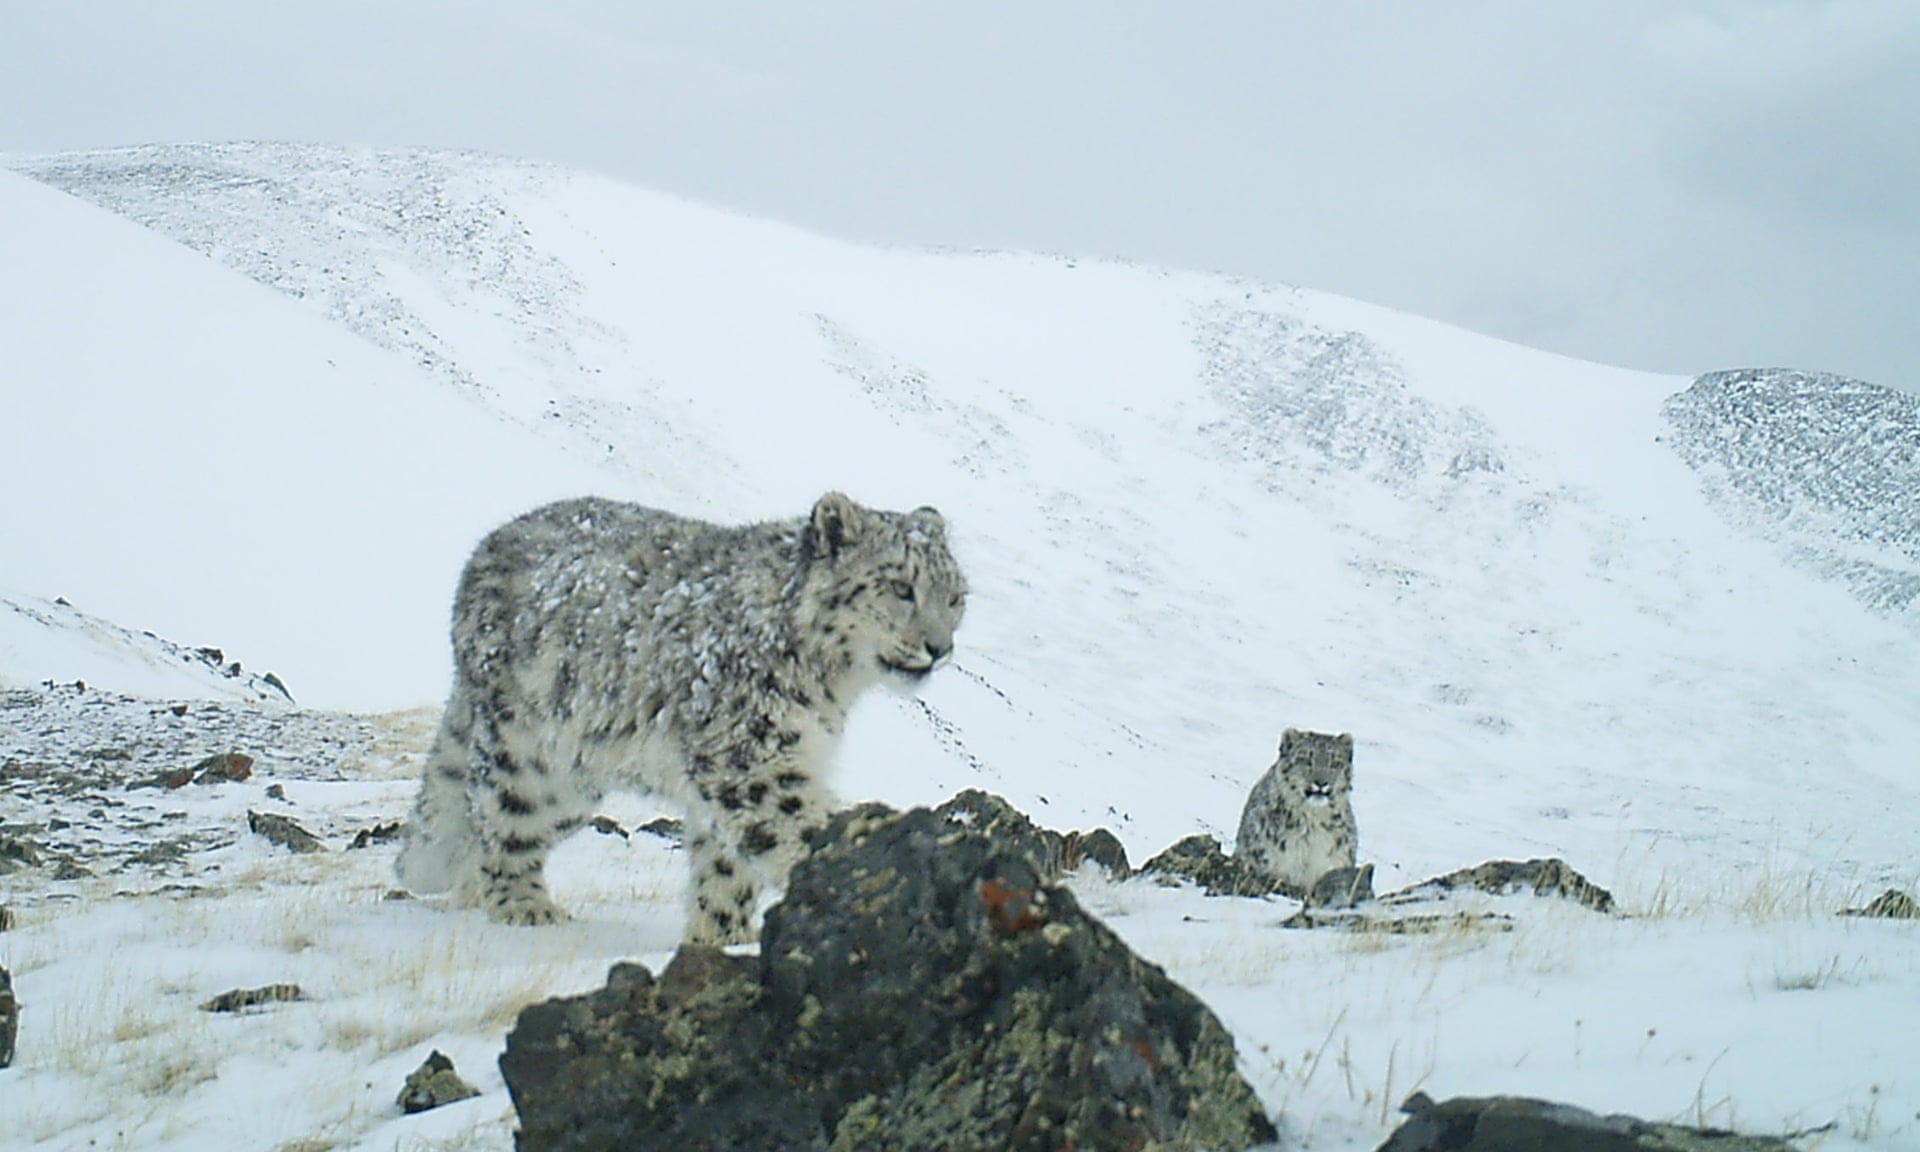 A snow leopard in Russia's Sailyugem national park. Image Credit: Sailyugem National Park/WWF Russia.